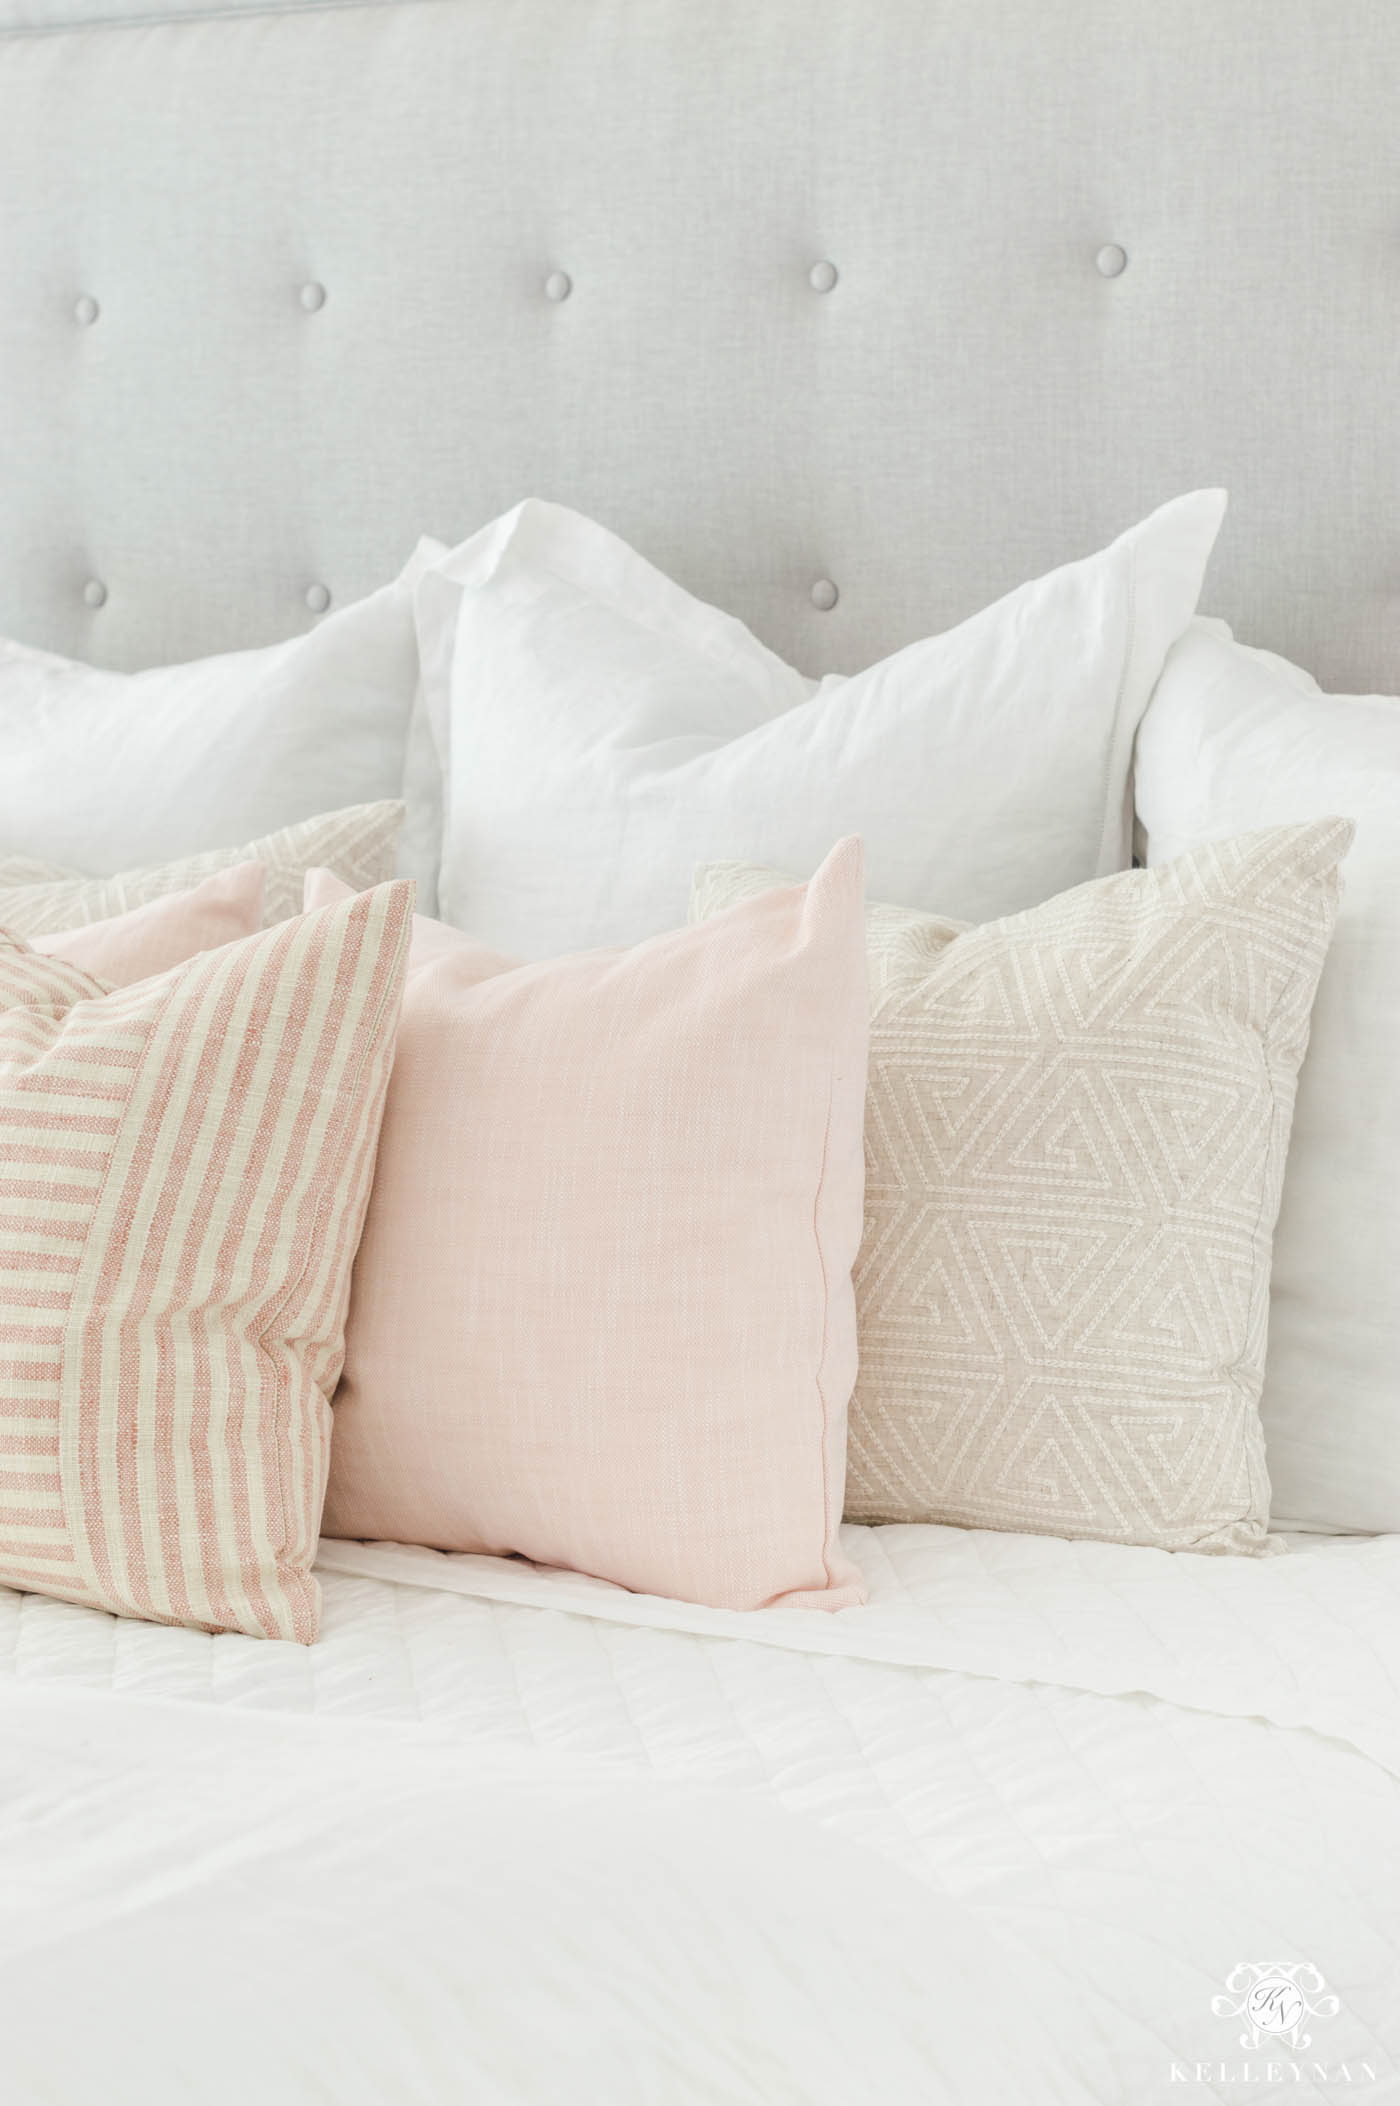 How to decorate a pink bedroom that isn't too girly